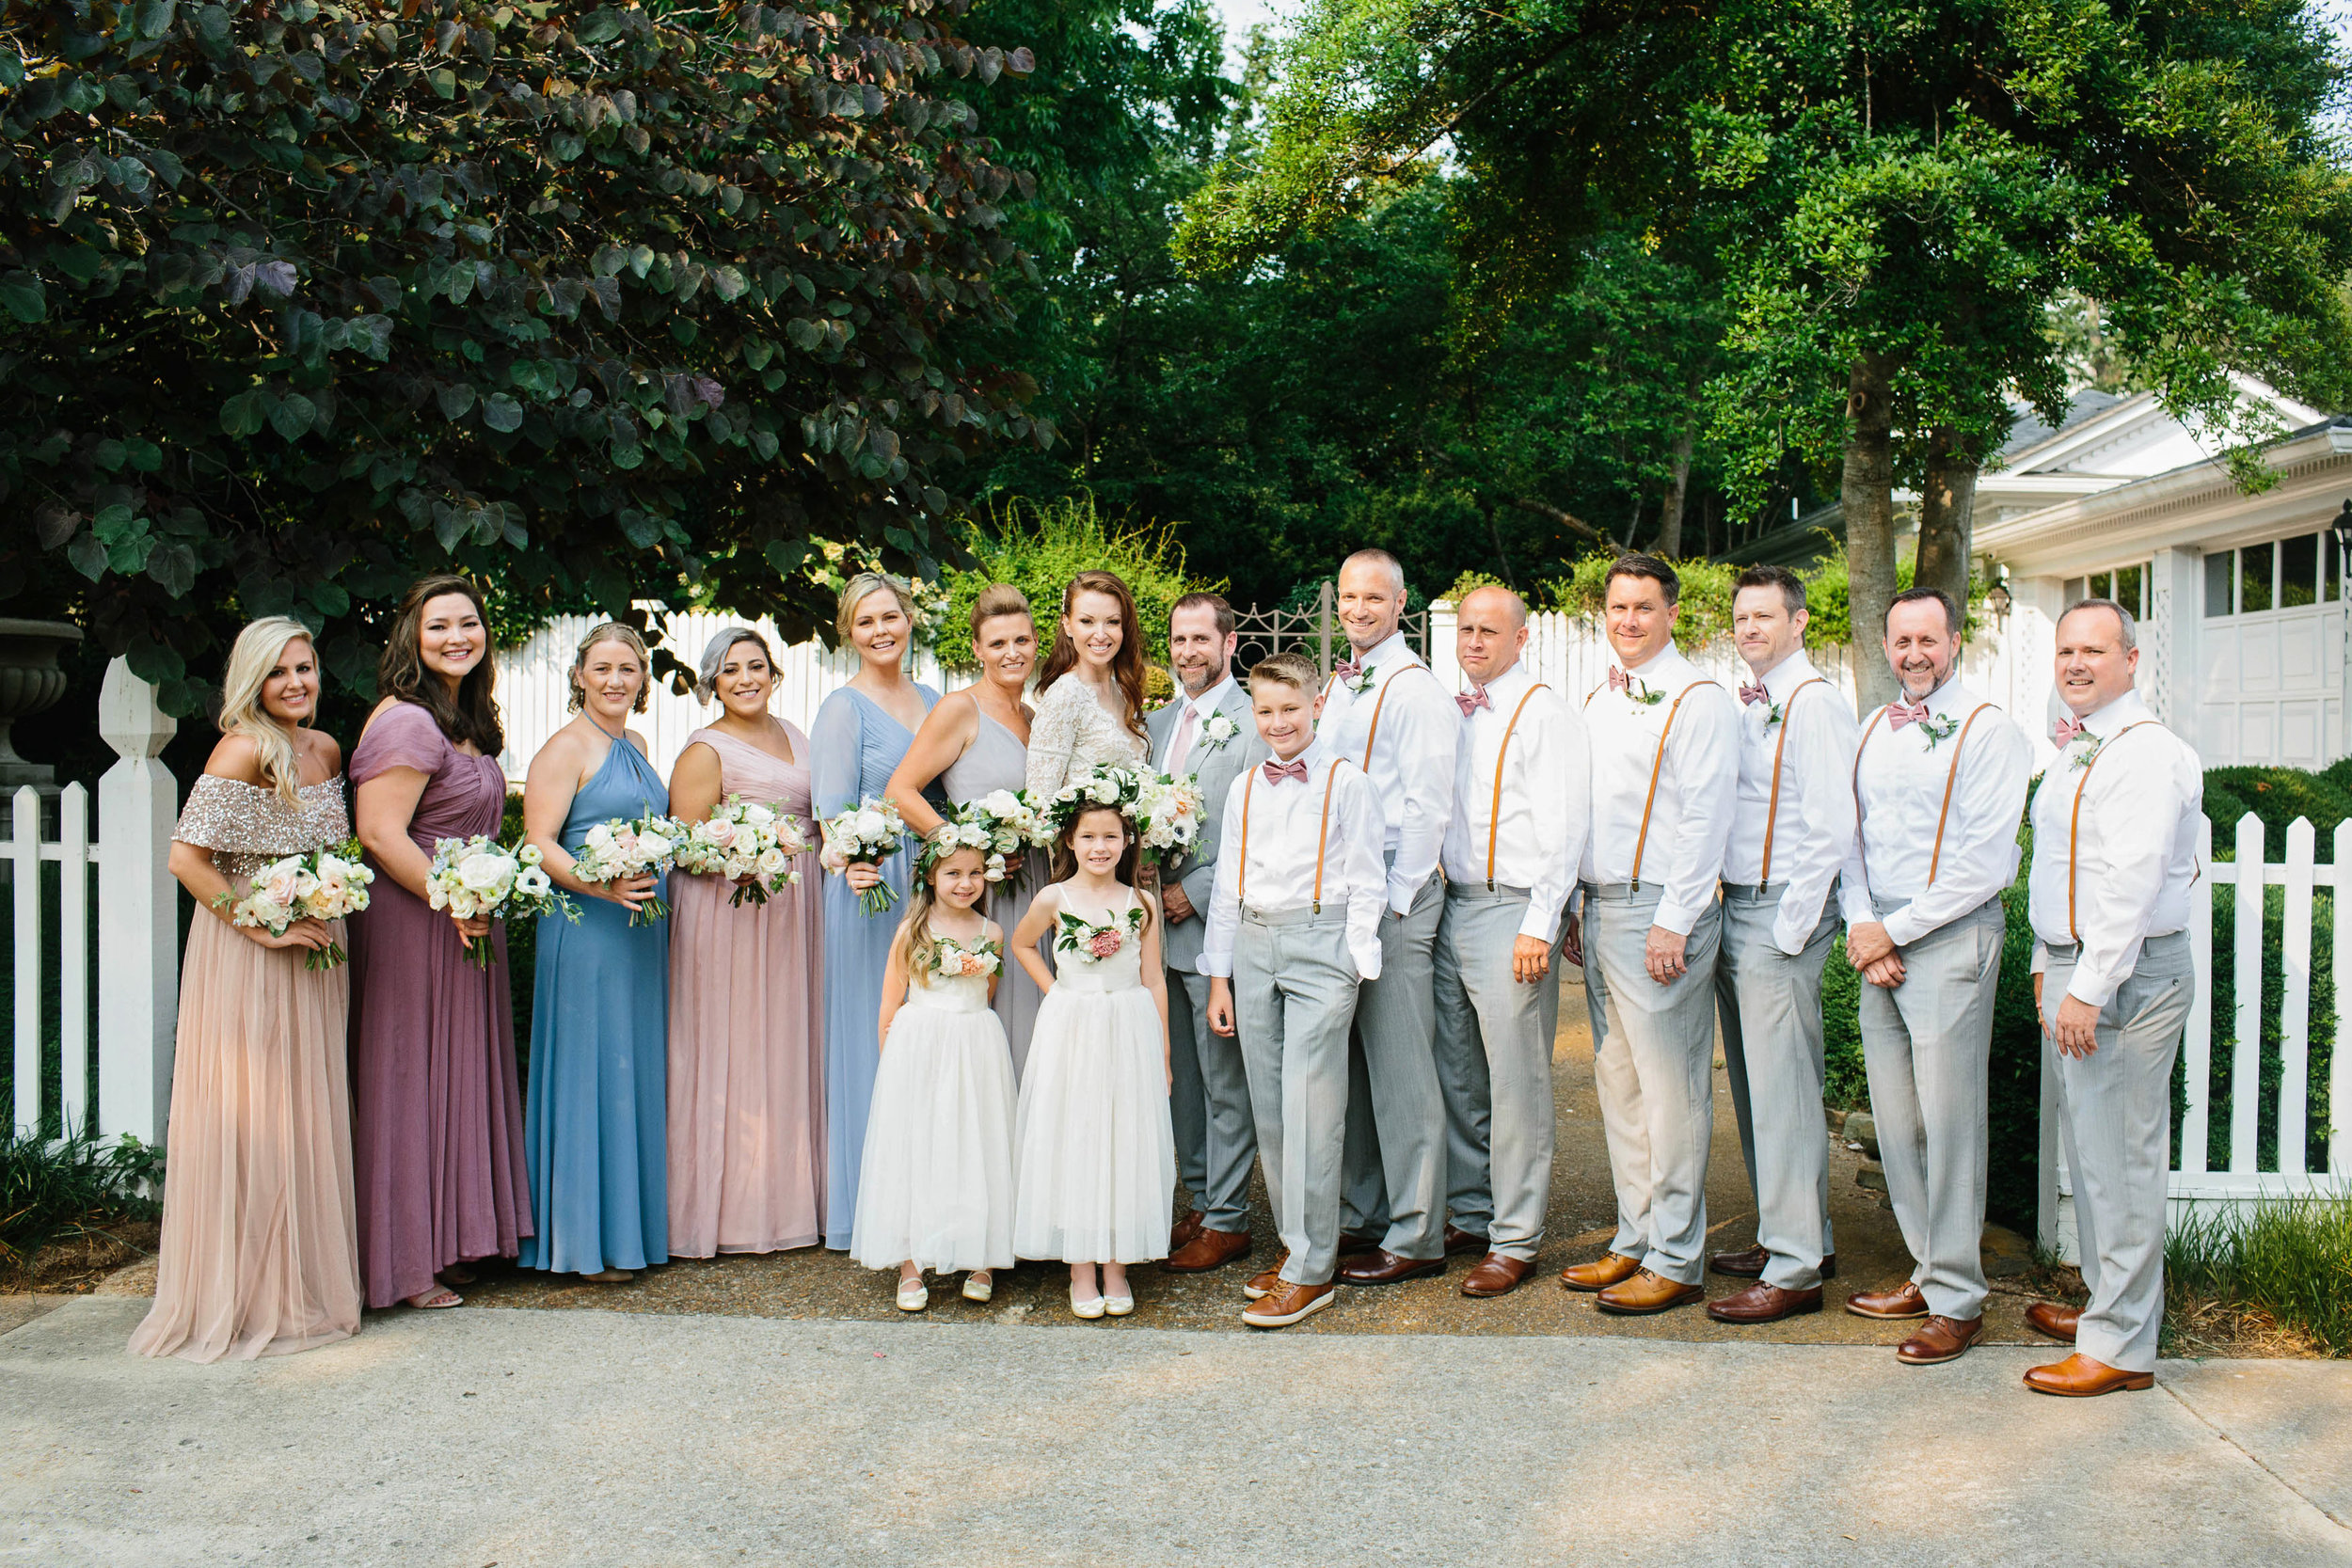 flowers_wedding_bridal_floridesigns_huntsville_alabama (35 of 44).jpg